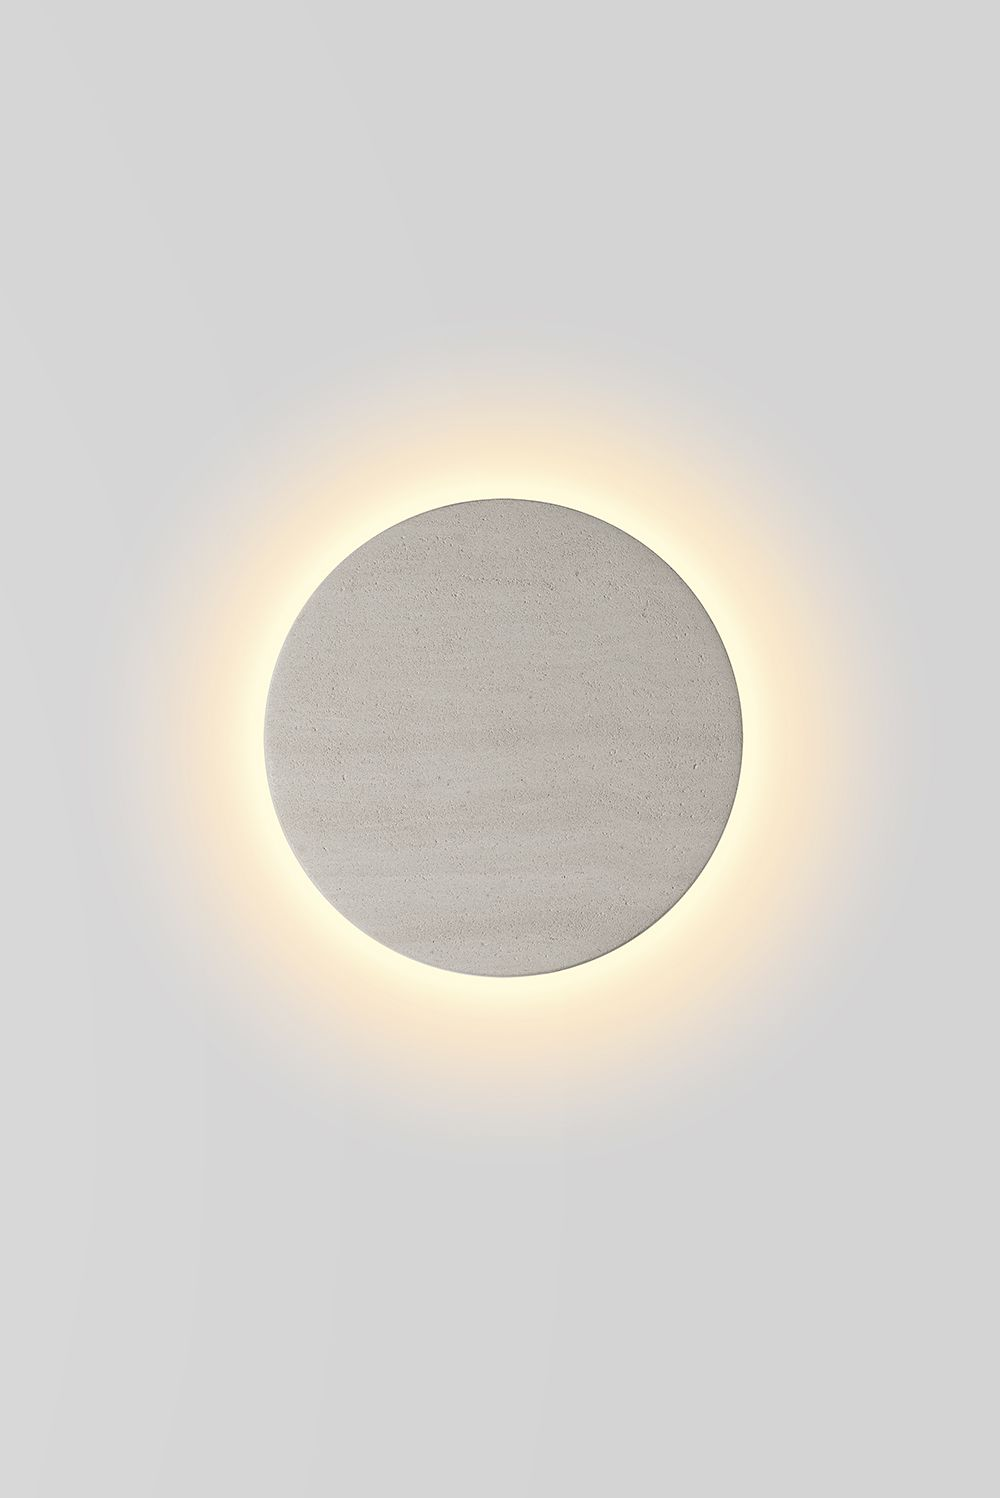 Eetkamer Eclipse Eclipse Wall Light Meditation Pinterest Verlichting Lampen